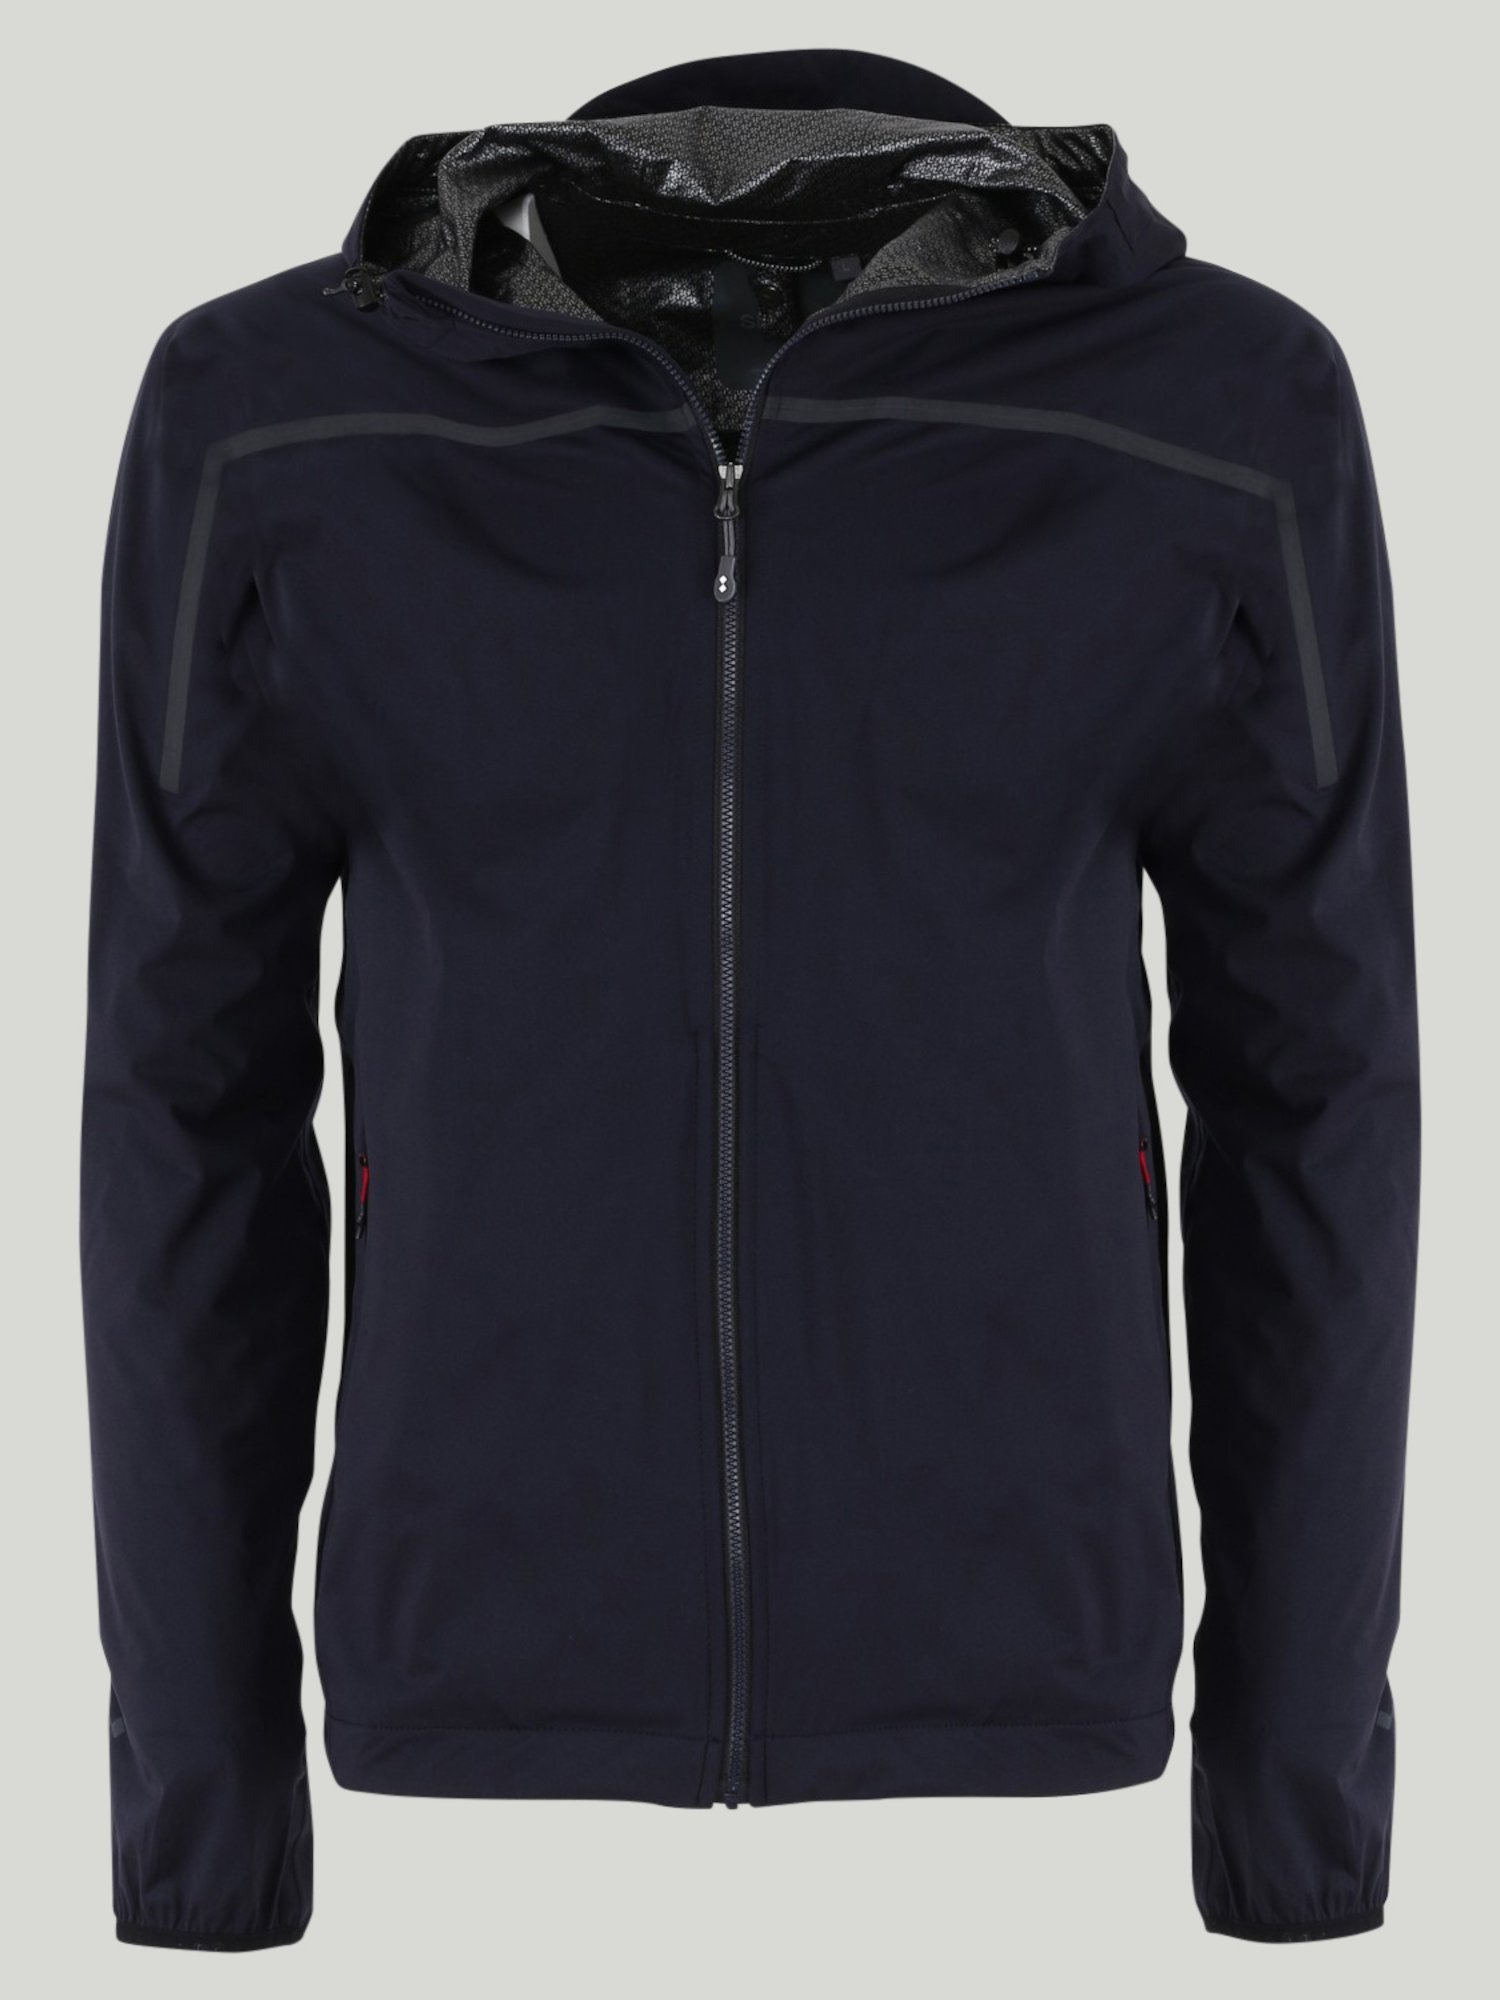 CHAQUETA 151 (MRS) - Navy